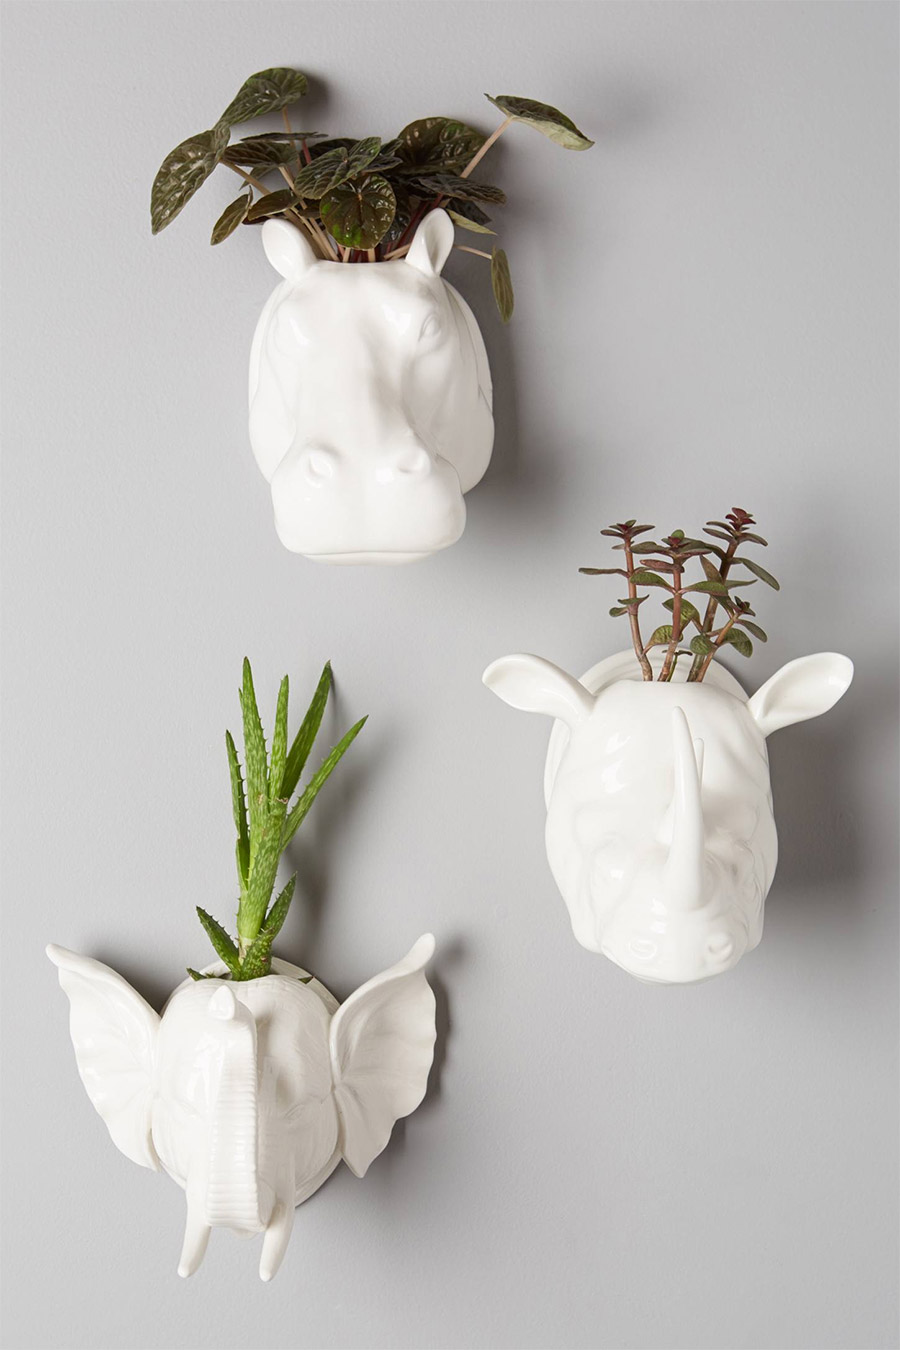 View in gallery Sahel Wall Planters